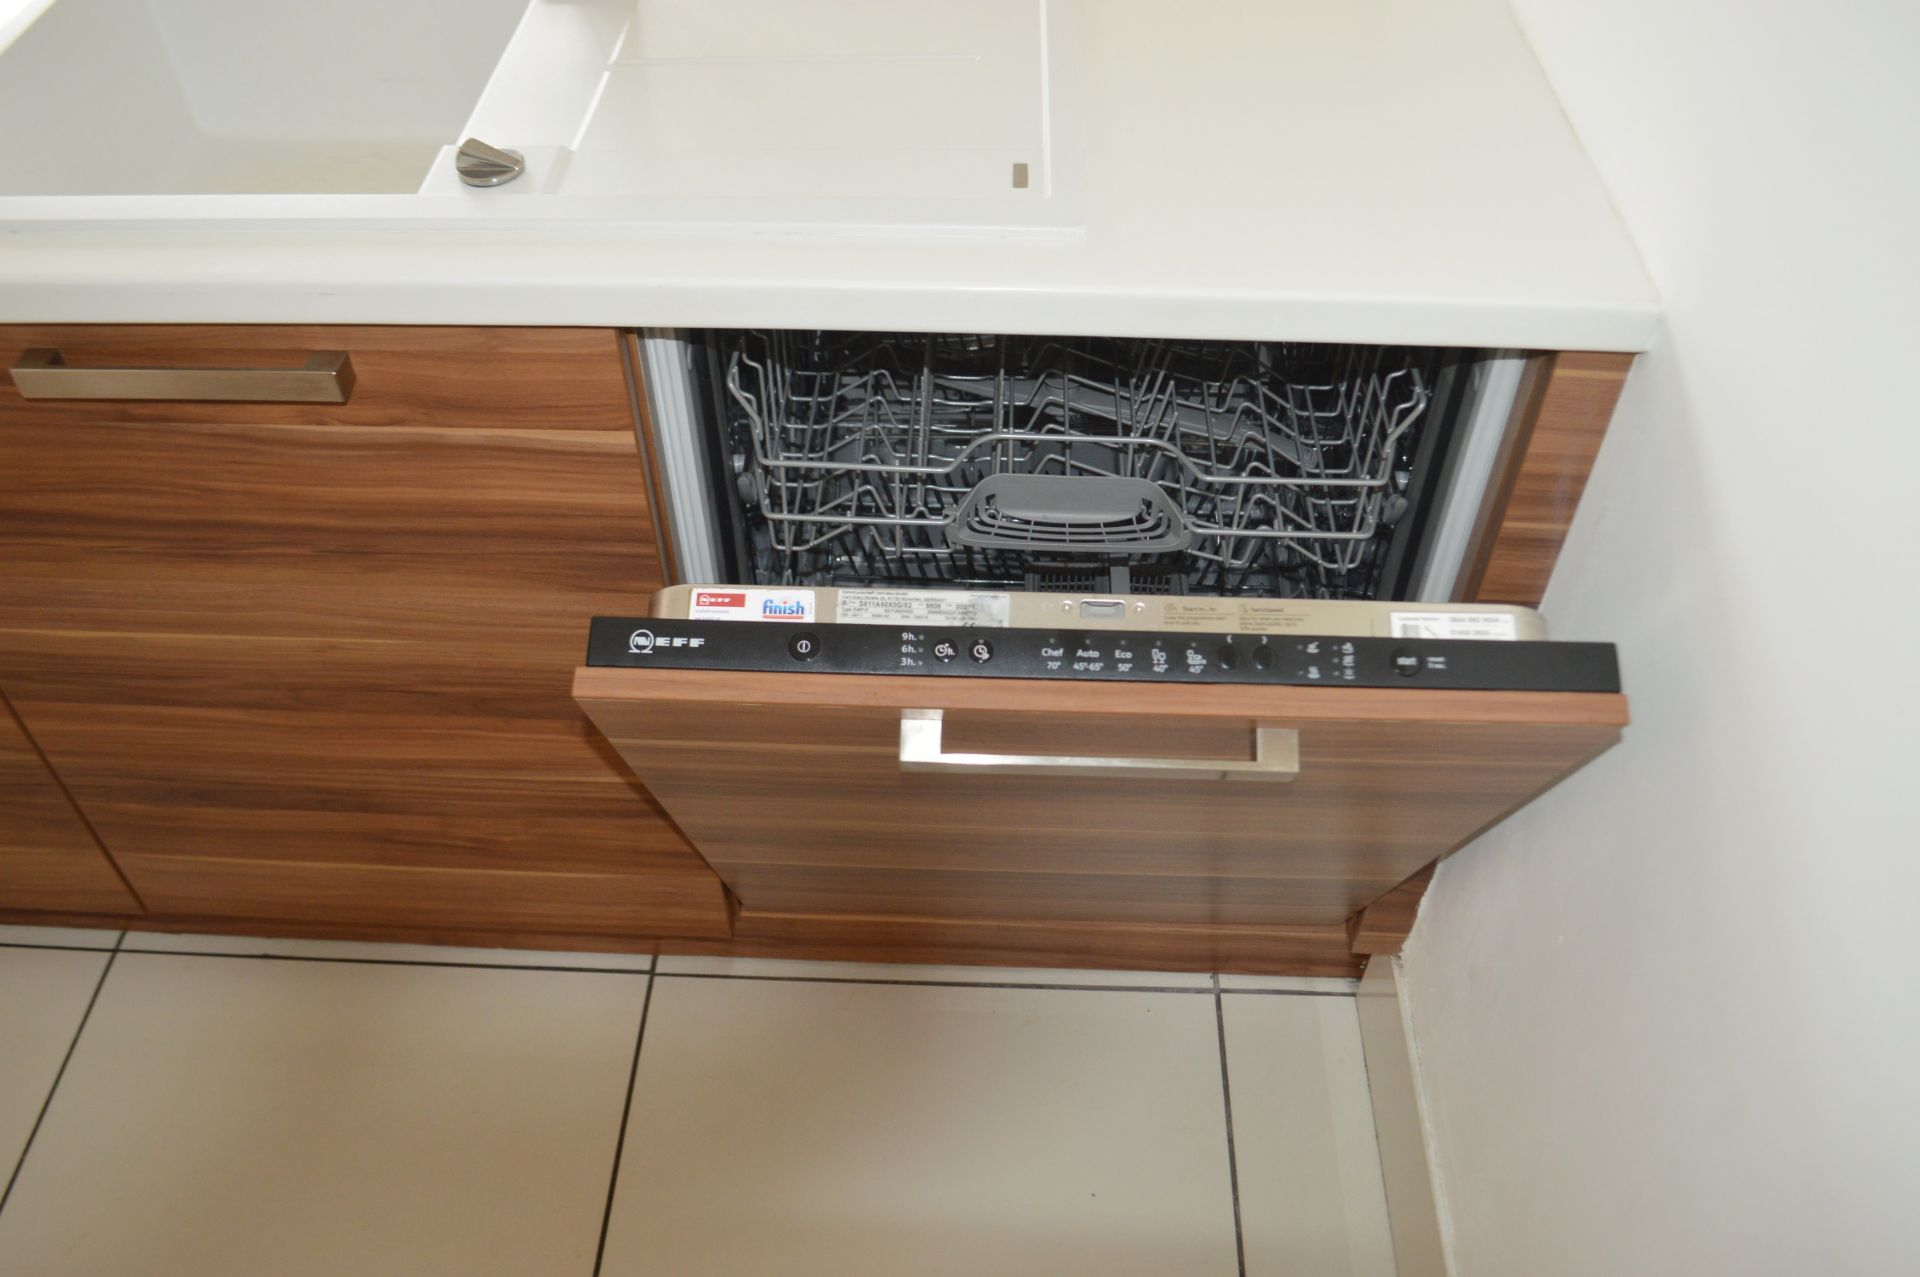 1 x Contemporary Bespoke Fitted Kitchen With Integrated Neff Branded Appliances, Quartz Worktops - Image 39 of 52